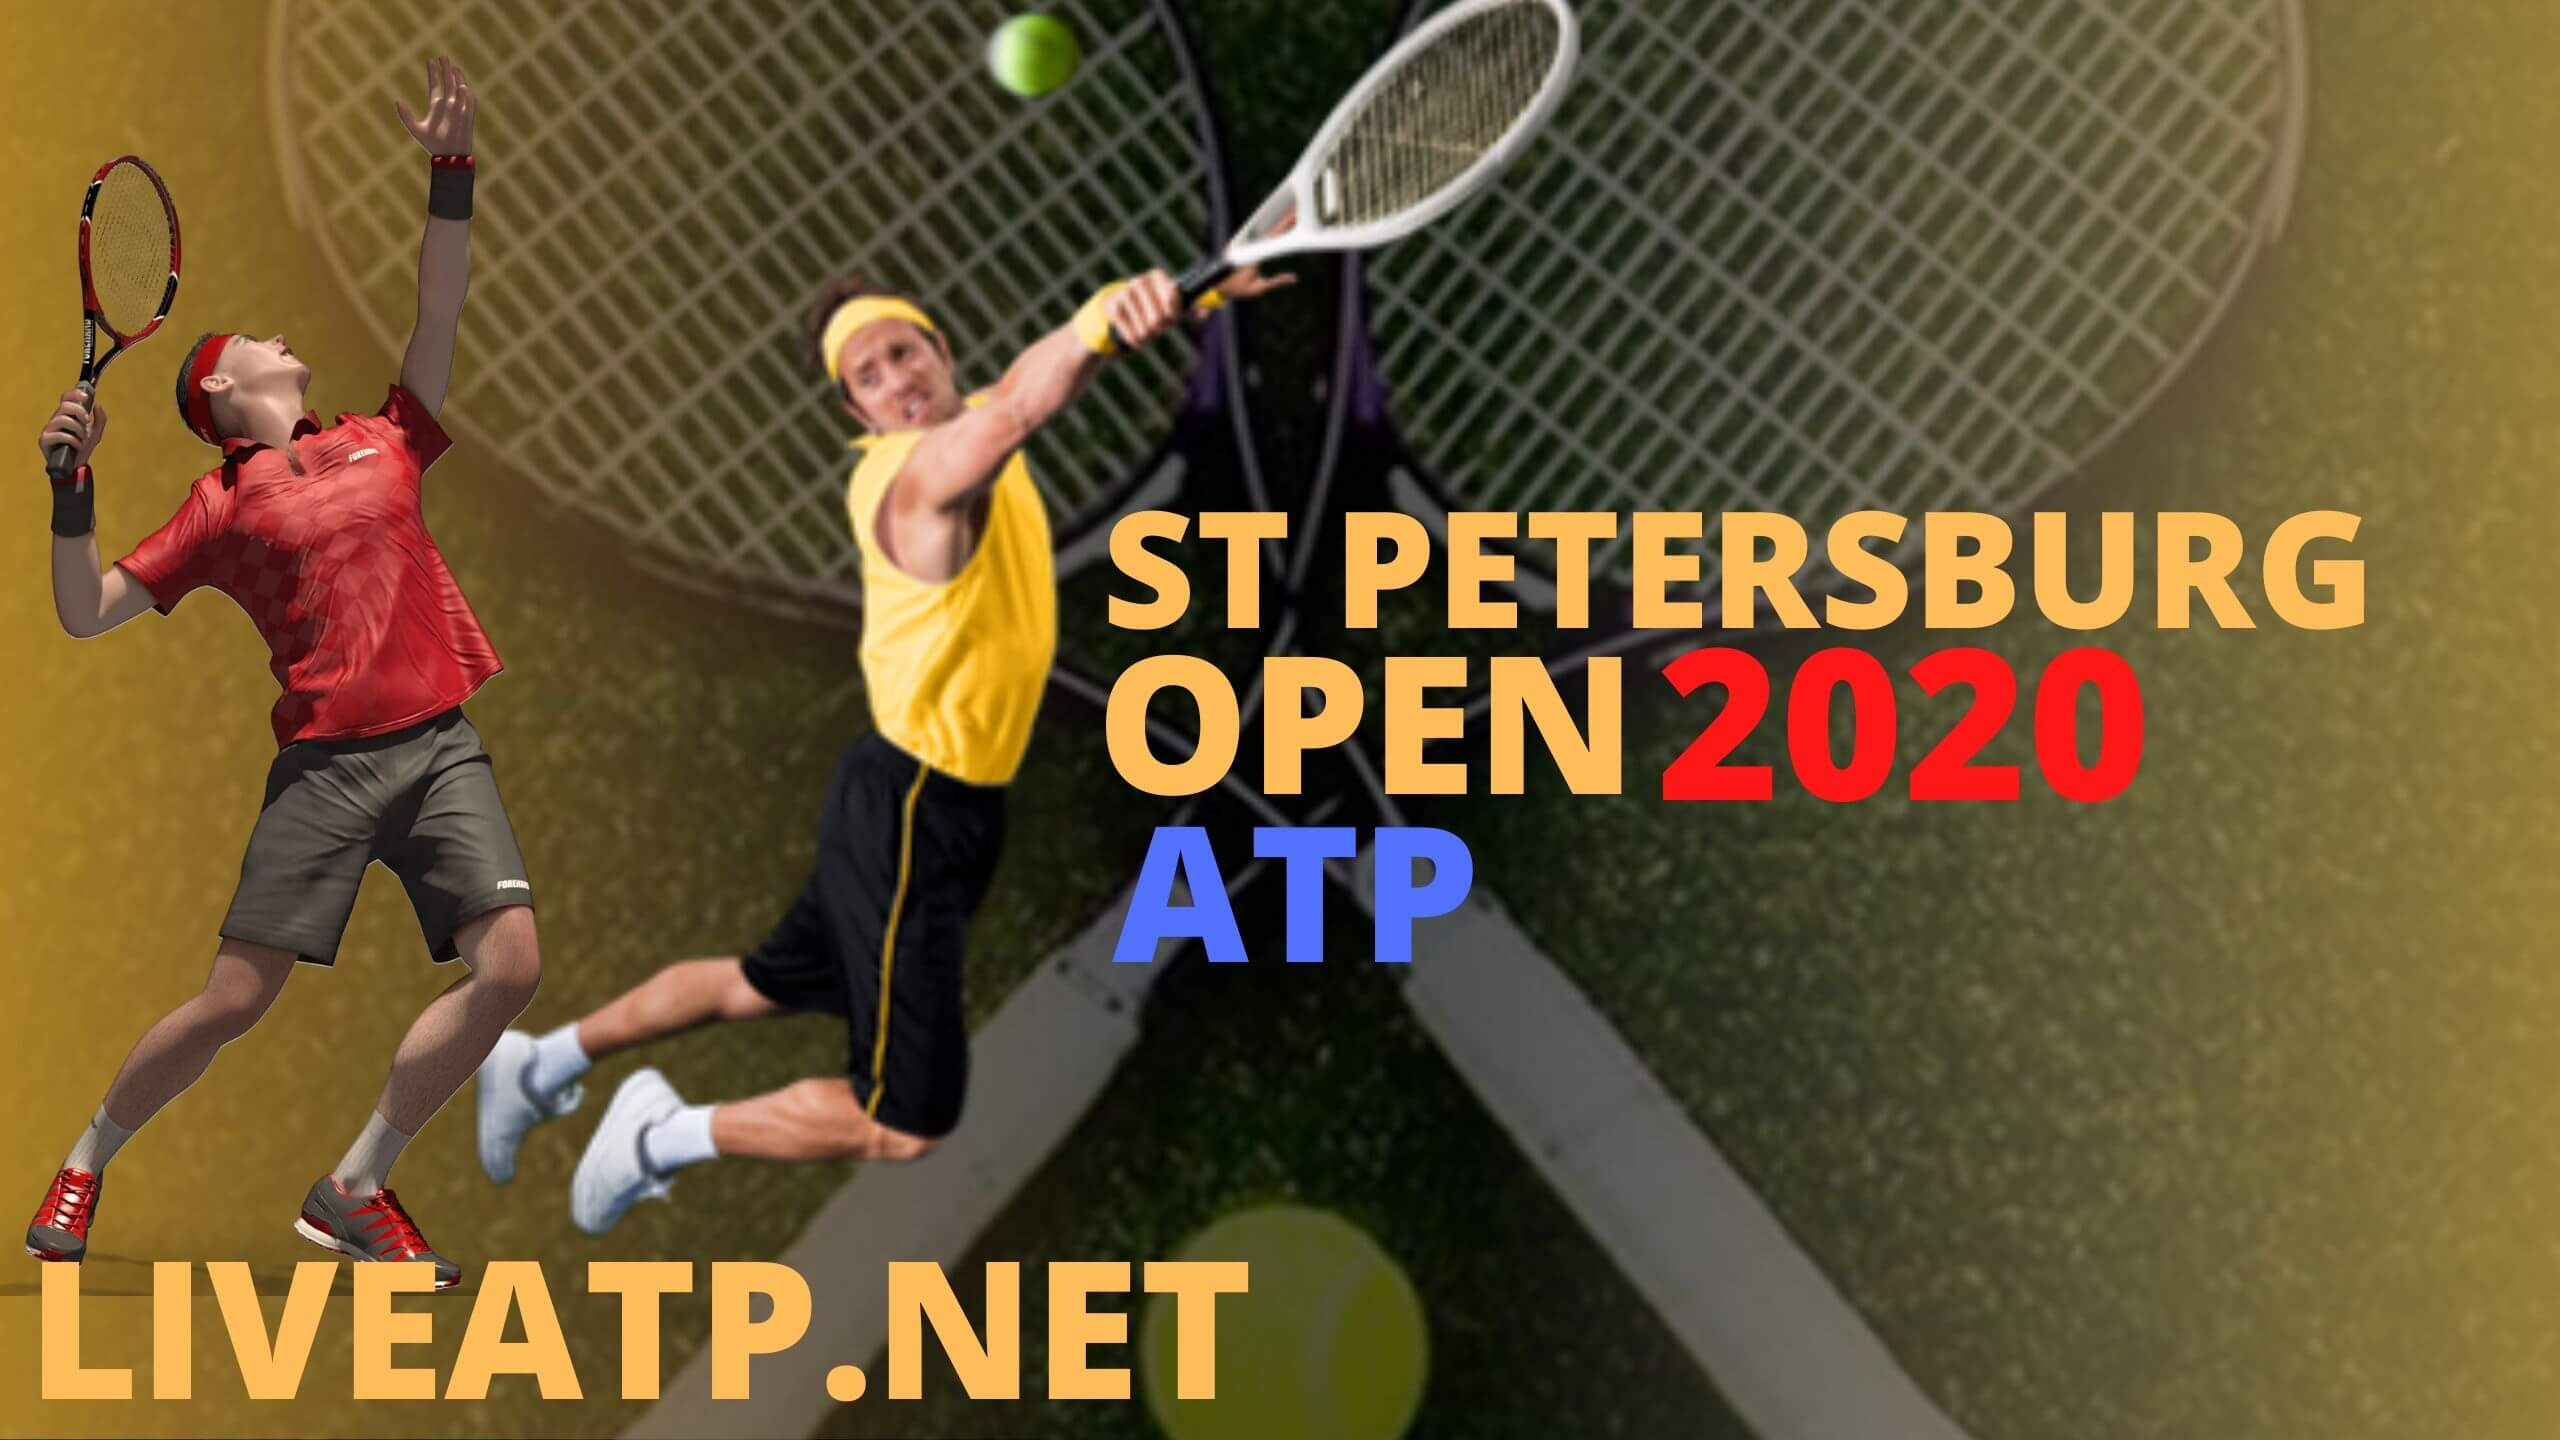 St Petersburg Open Live Stream 2020 | Day 4